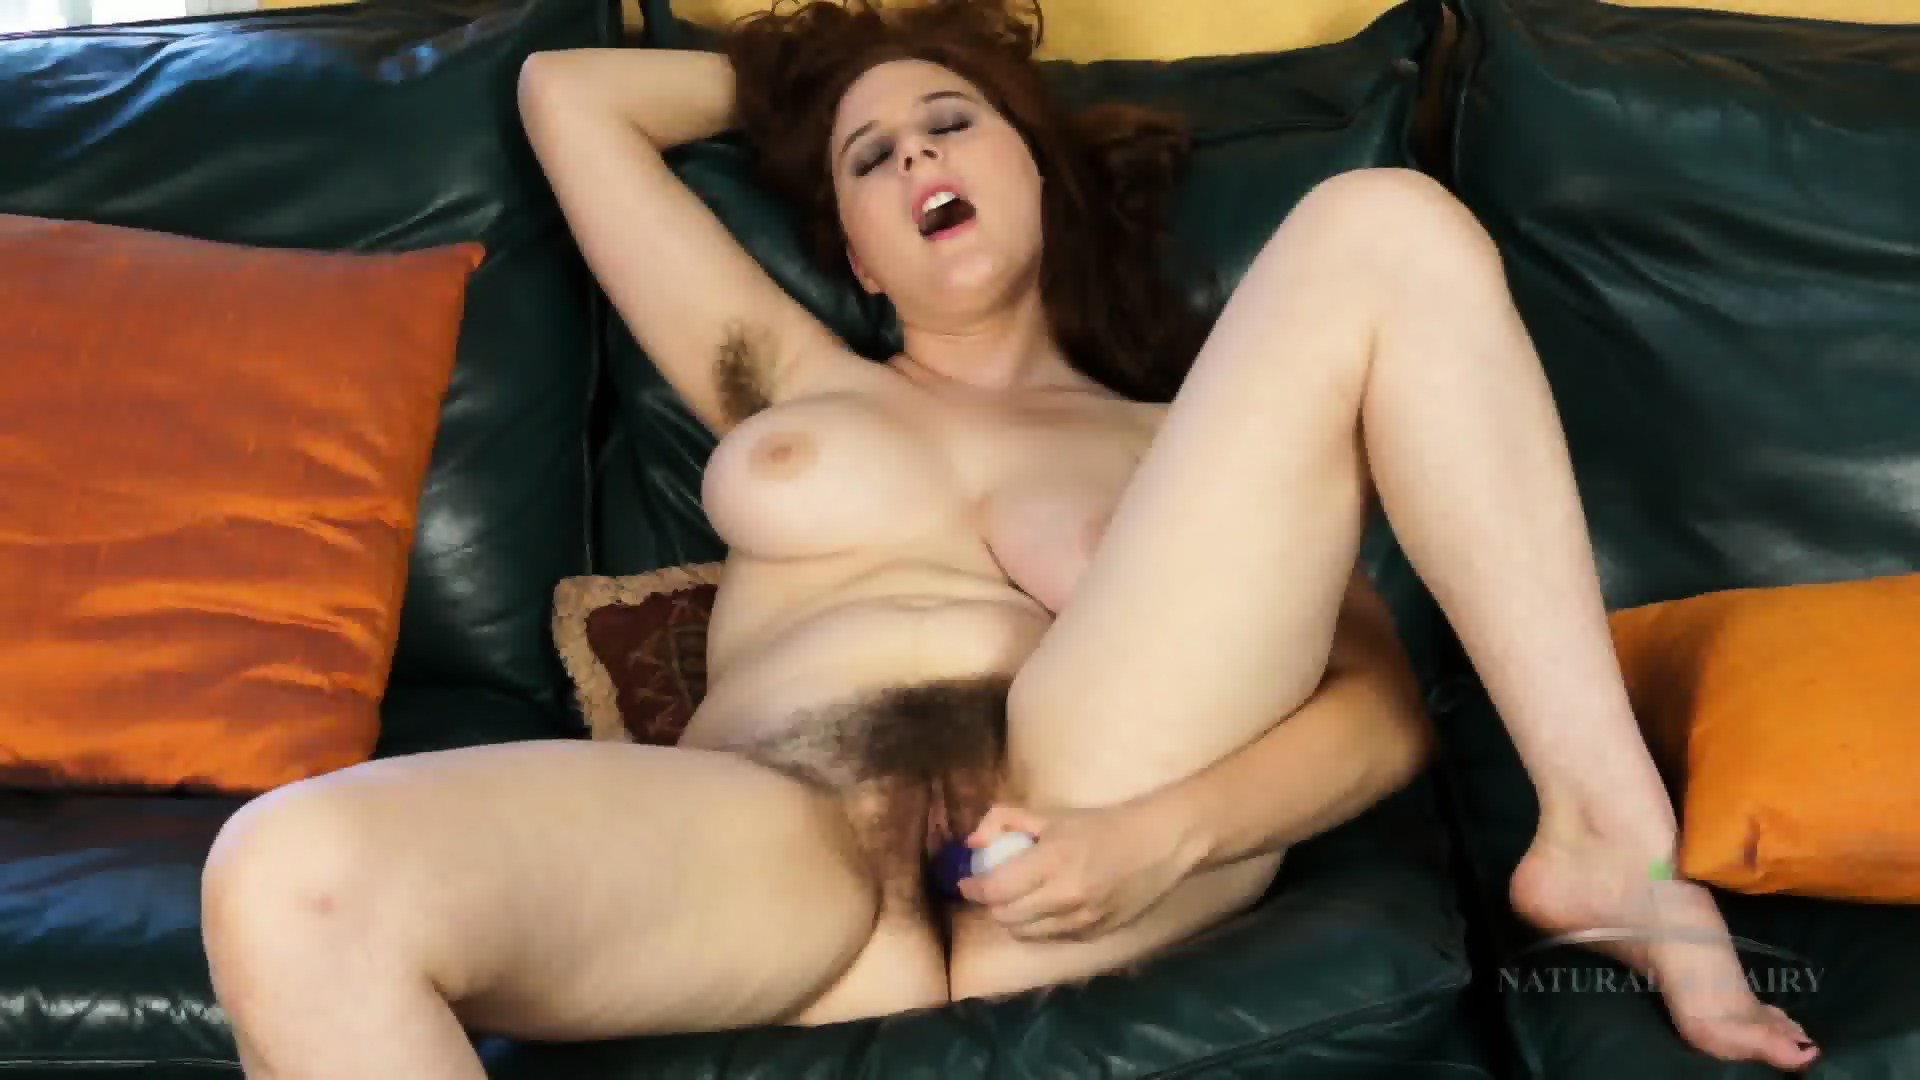 Mature Woman With Hairy Pussy Will Suck The Cock And Masturbate